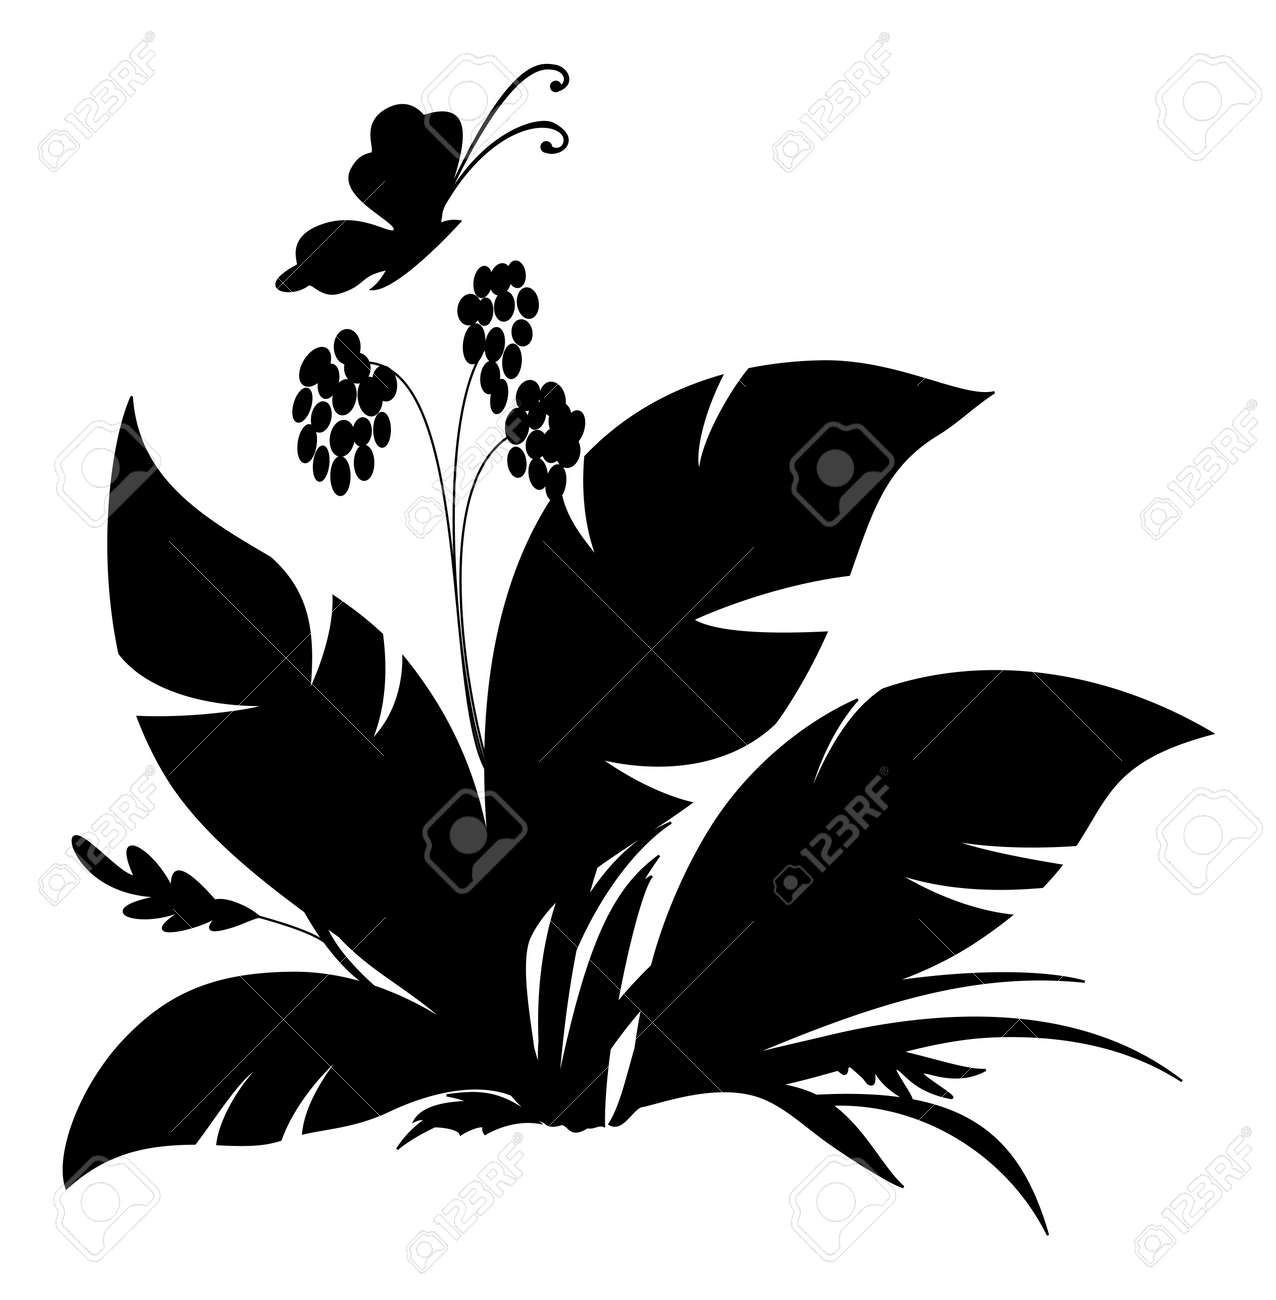 Tropical plant and butterfly, black silhouette on white background Stock Vector - 14057431